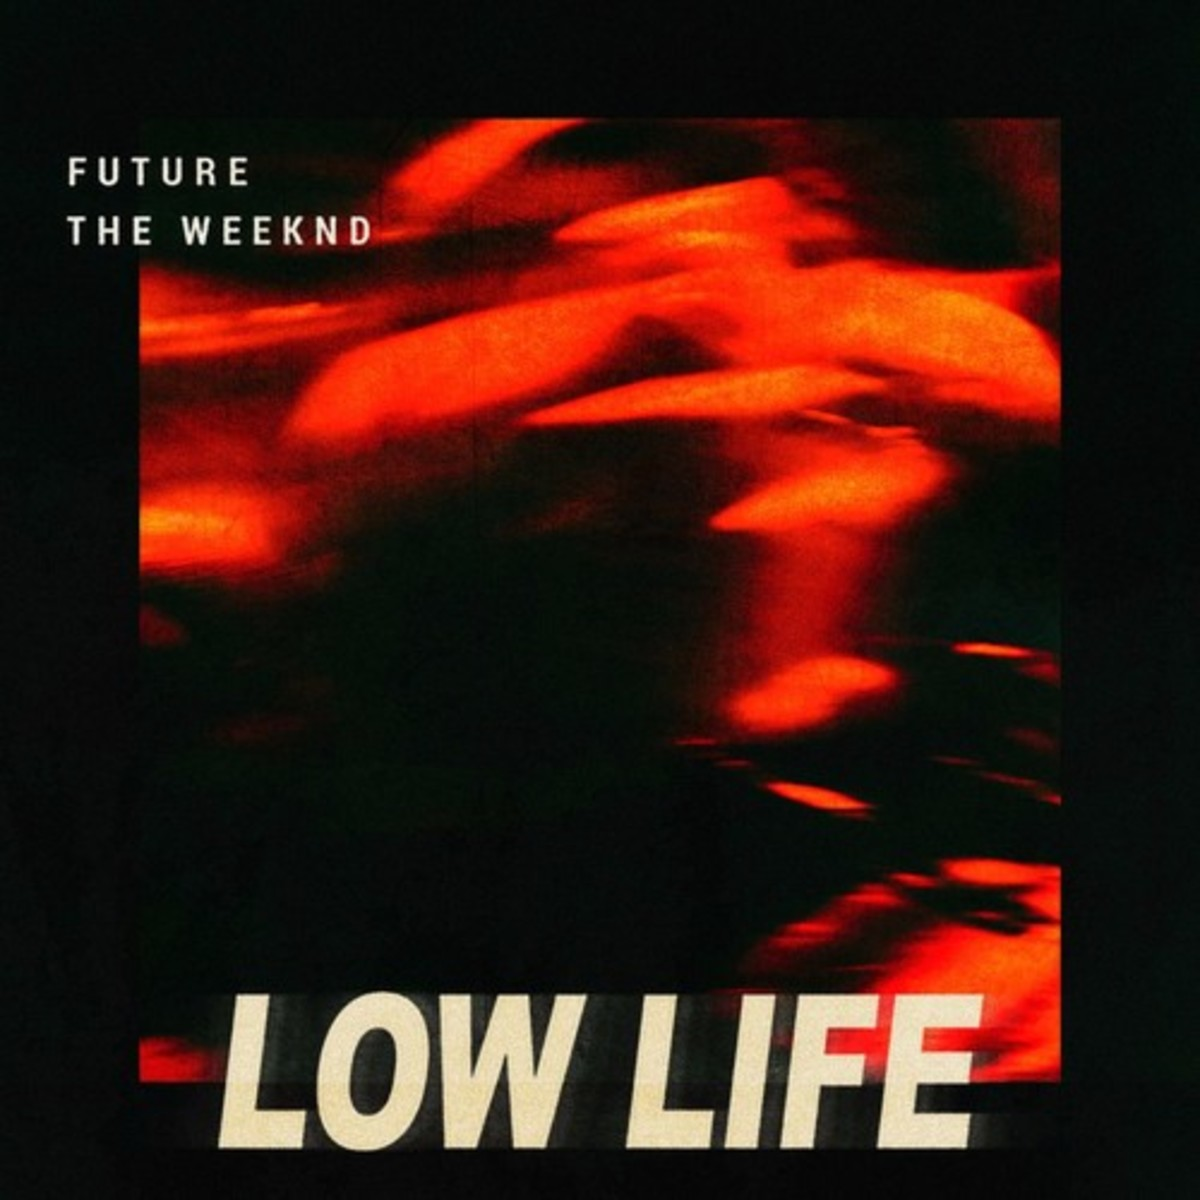 future-the-weeknd-low-life.jpg